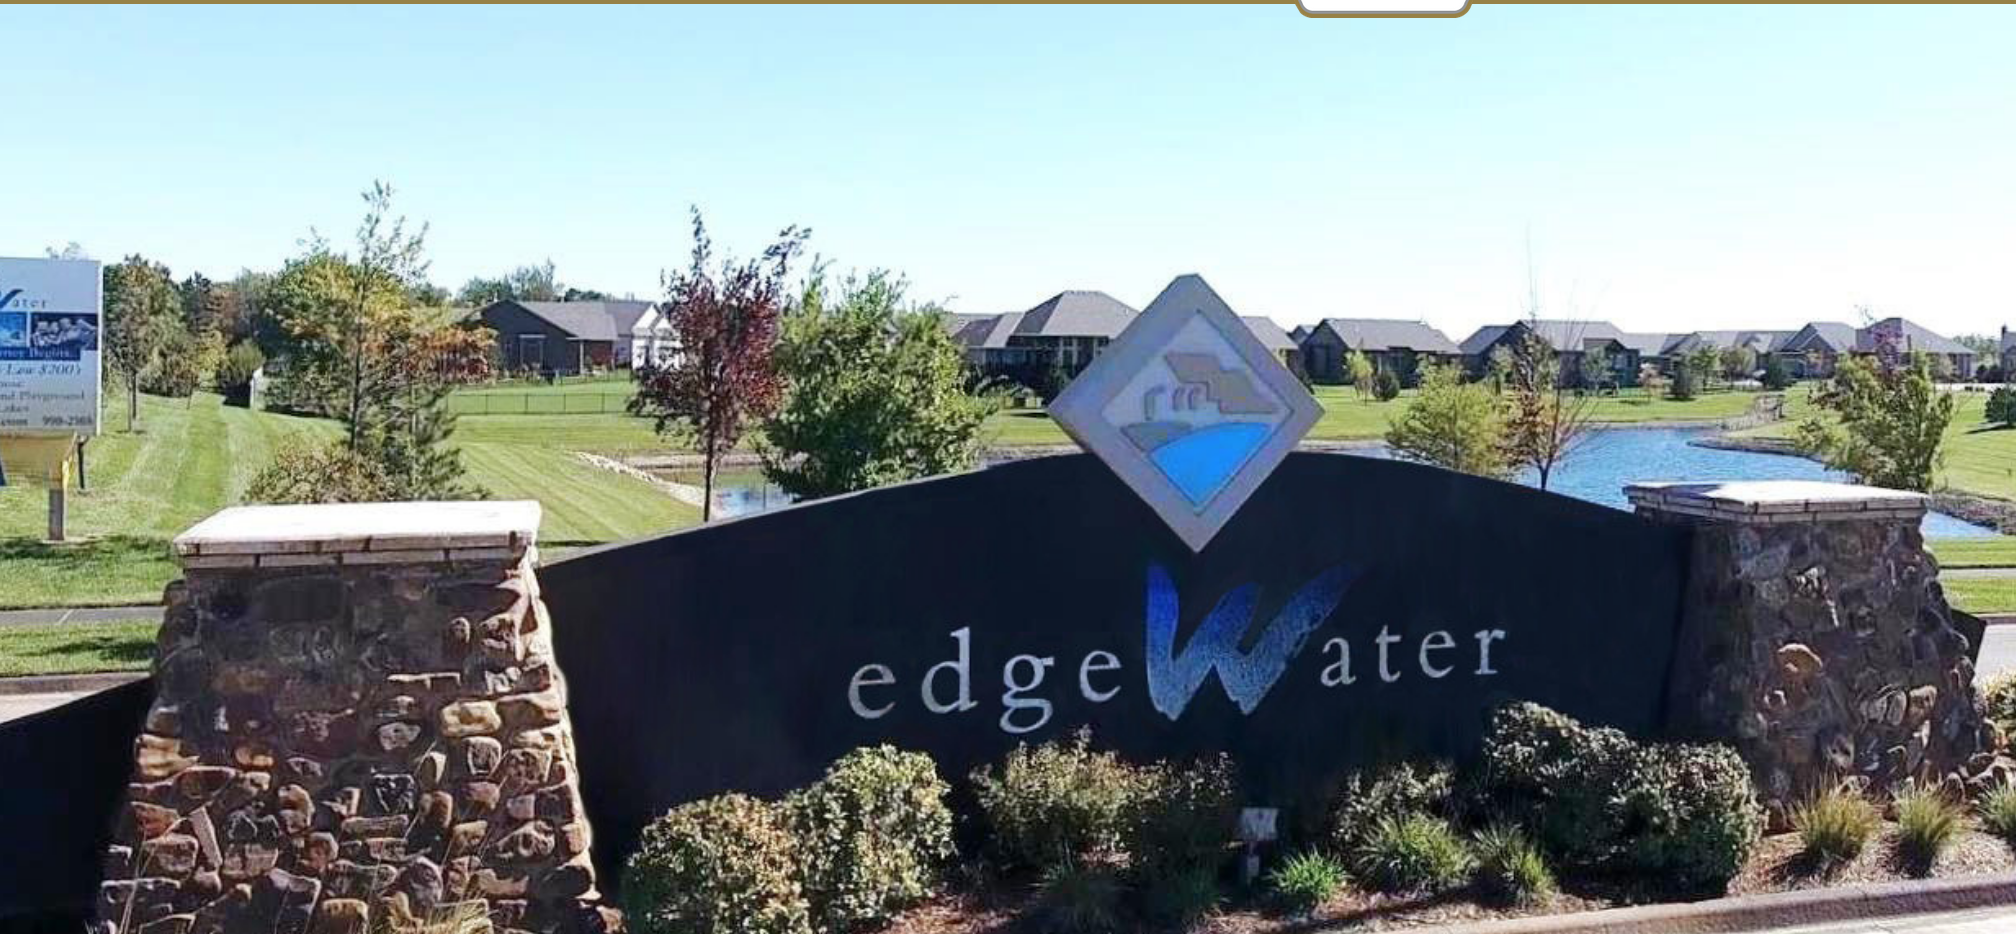 Edgewater - Northwest Wichita